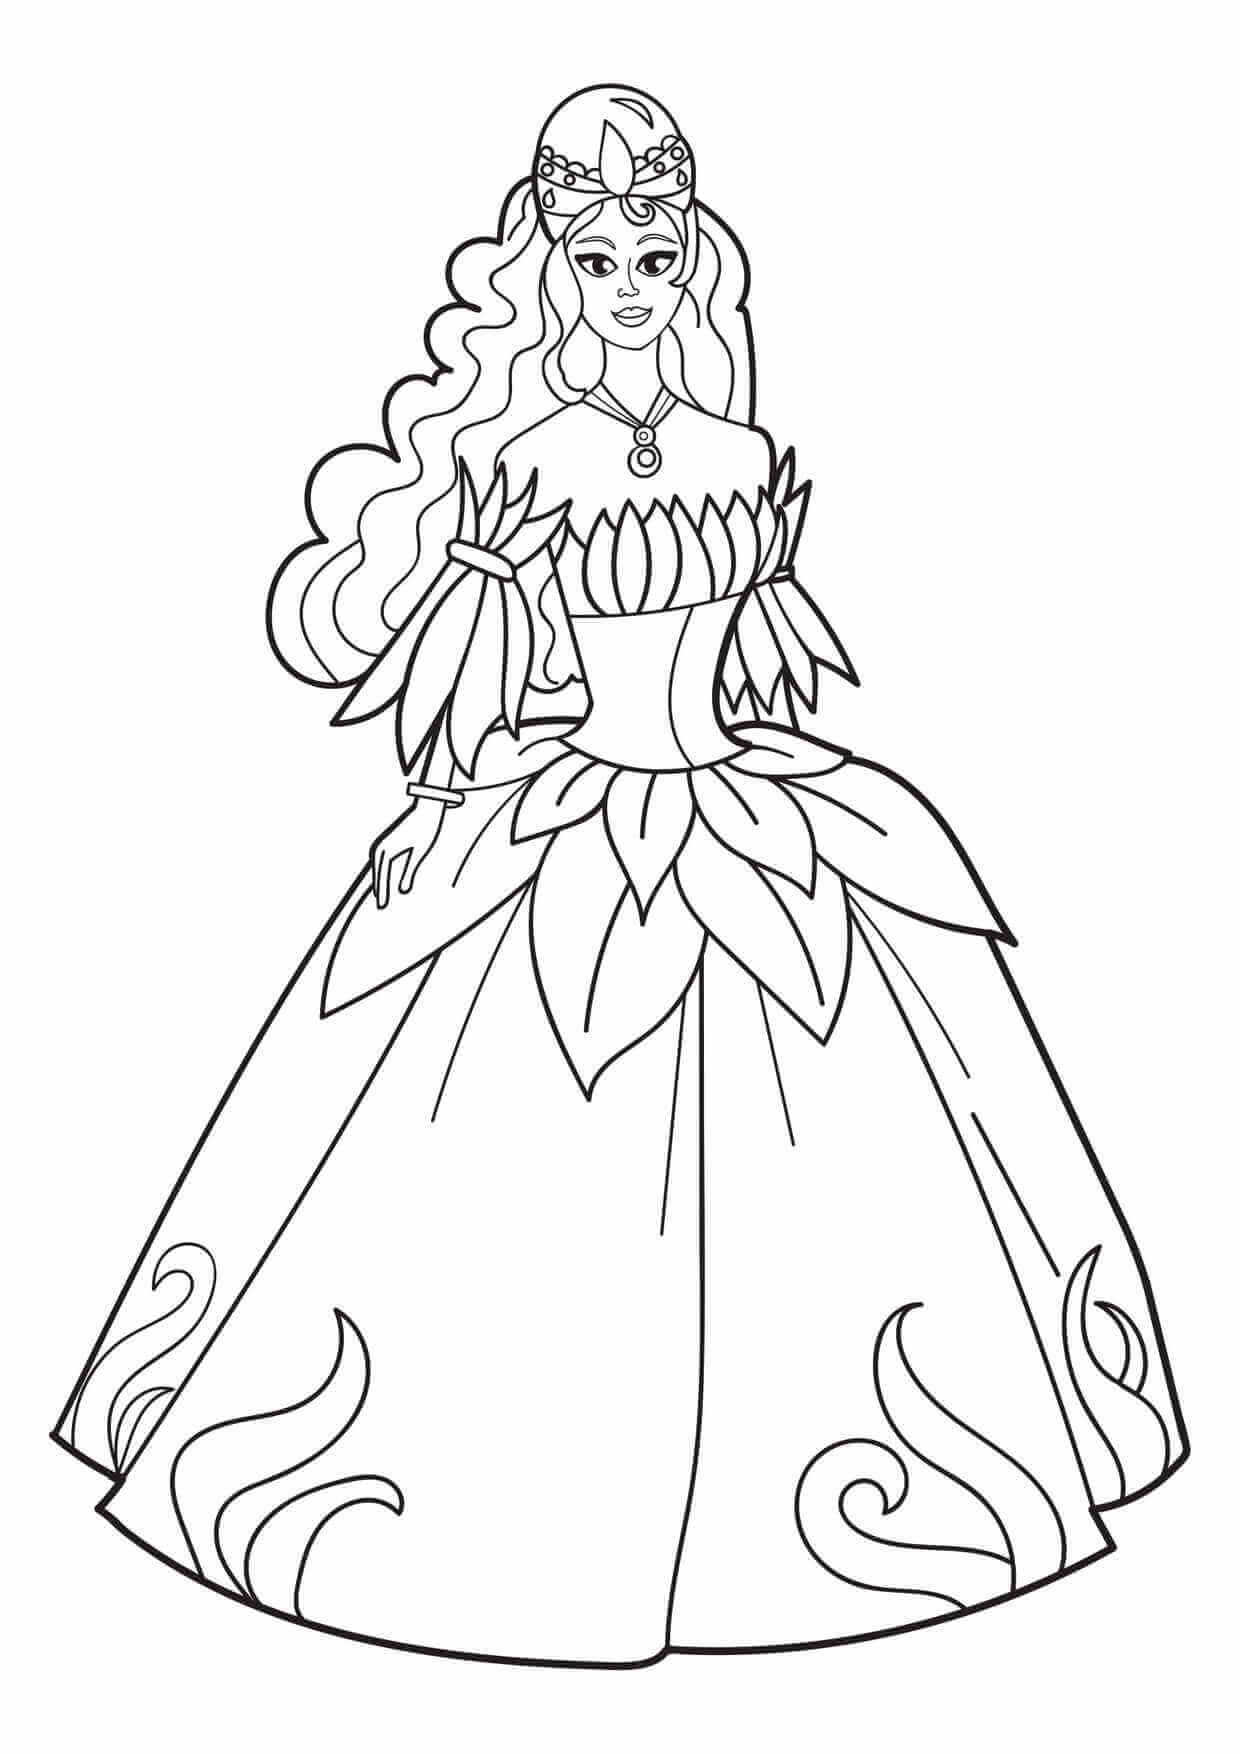 Coloring Pages For Girls Free